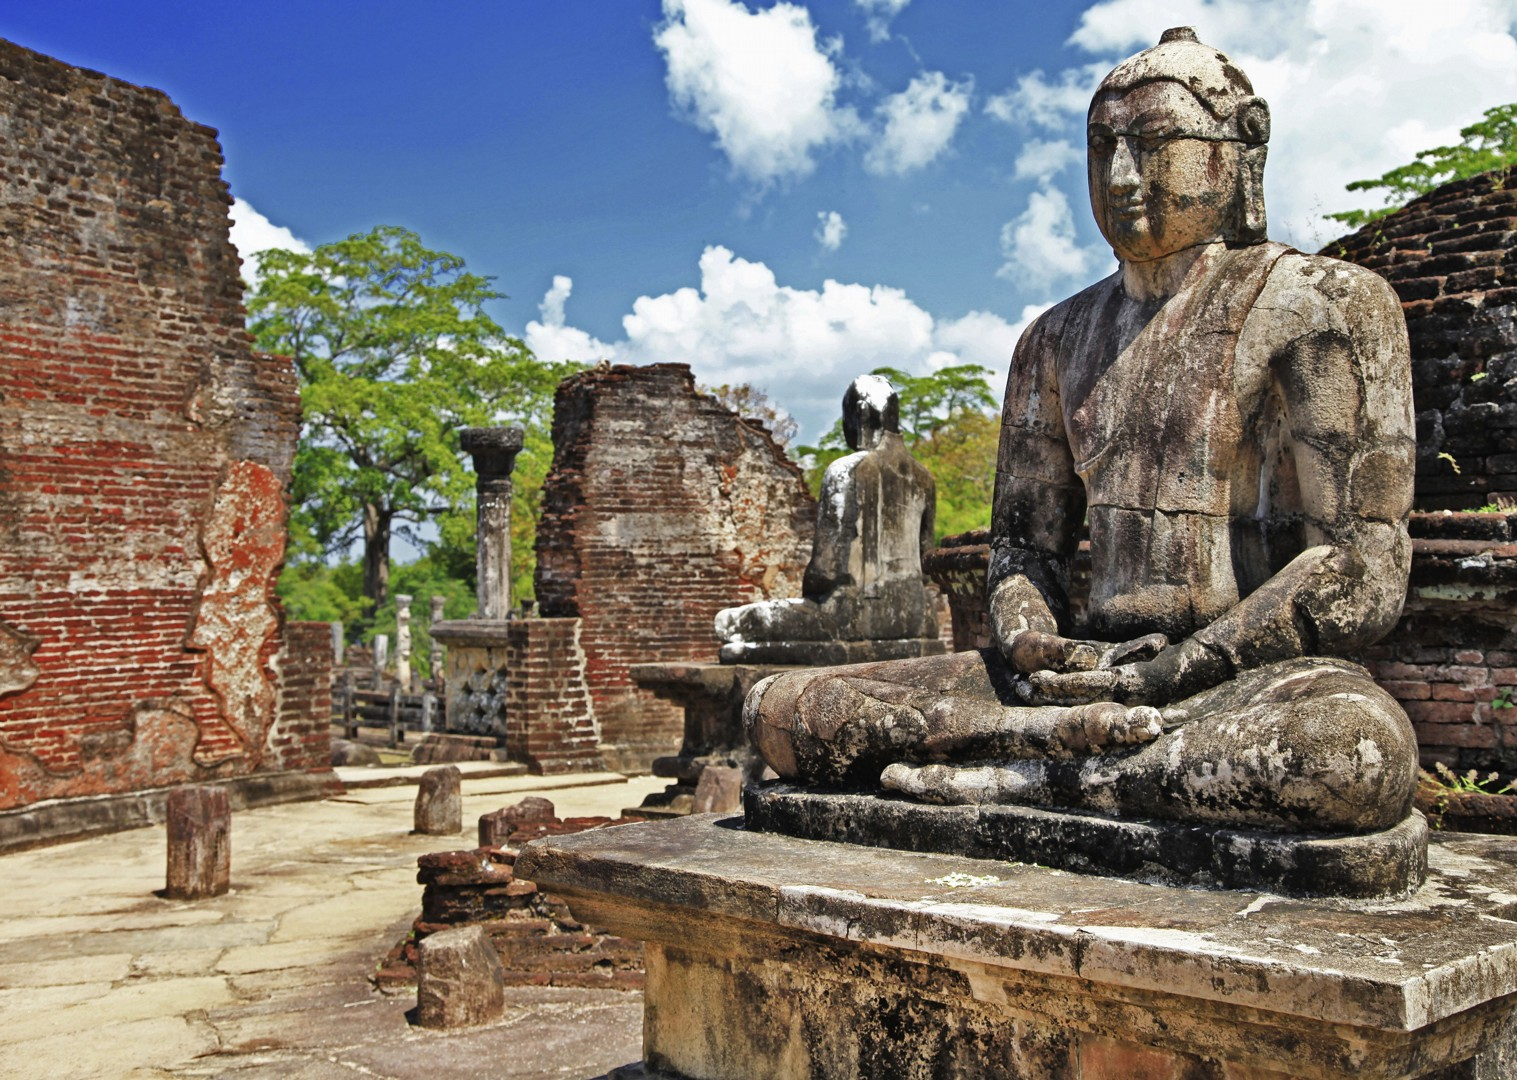 cycling-adventure-srilanka-temples-statues-holiday.jpg - Sri Lanka - Backroads and Beaches - Cycling Adventures